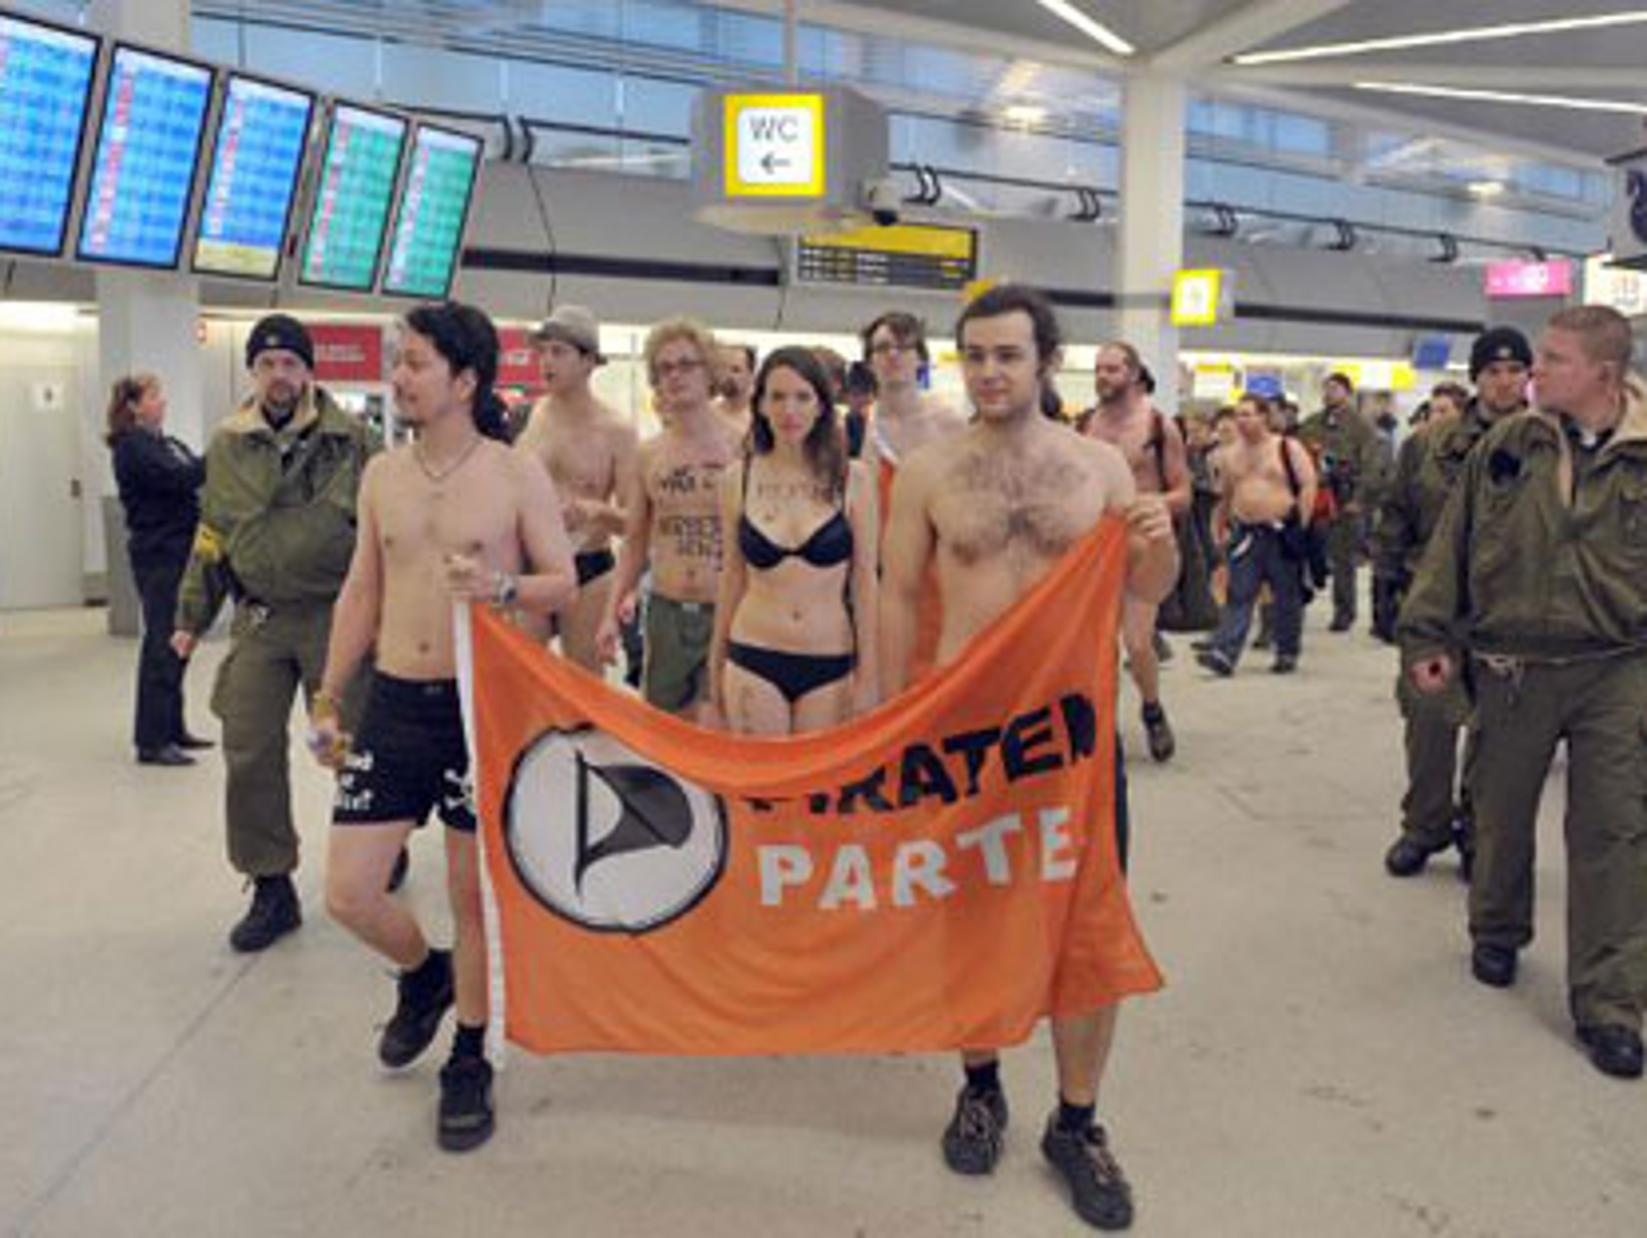 naked-airport-security-suck-cock-bet-video